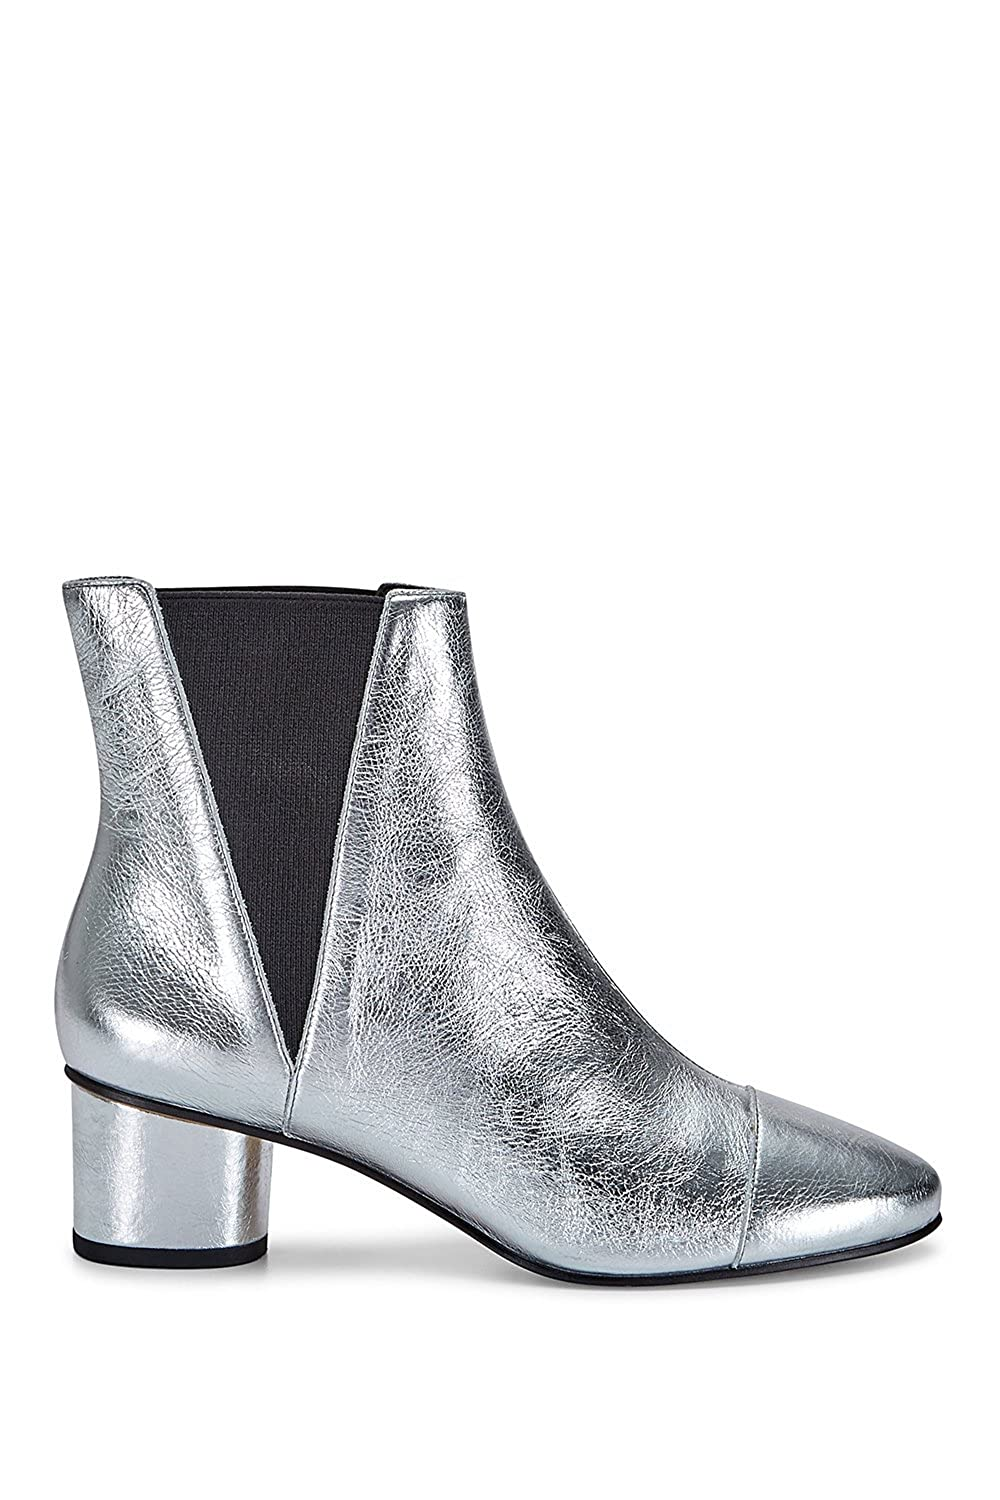 0f6614663ae Amazon.com: Rebecca Minkoff Izette Silver Heeled Boots: Shoes